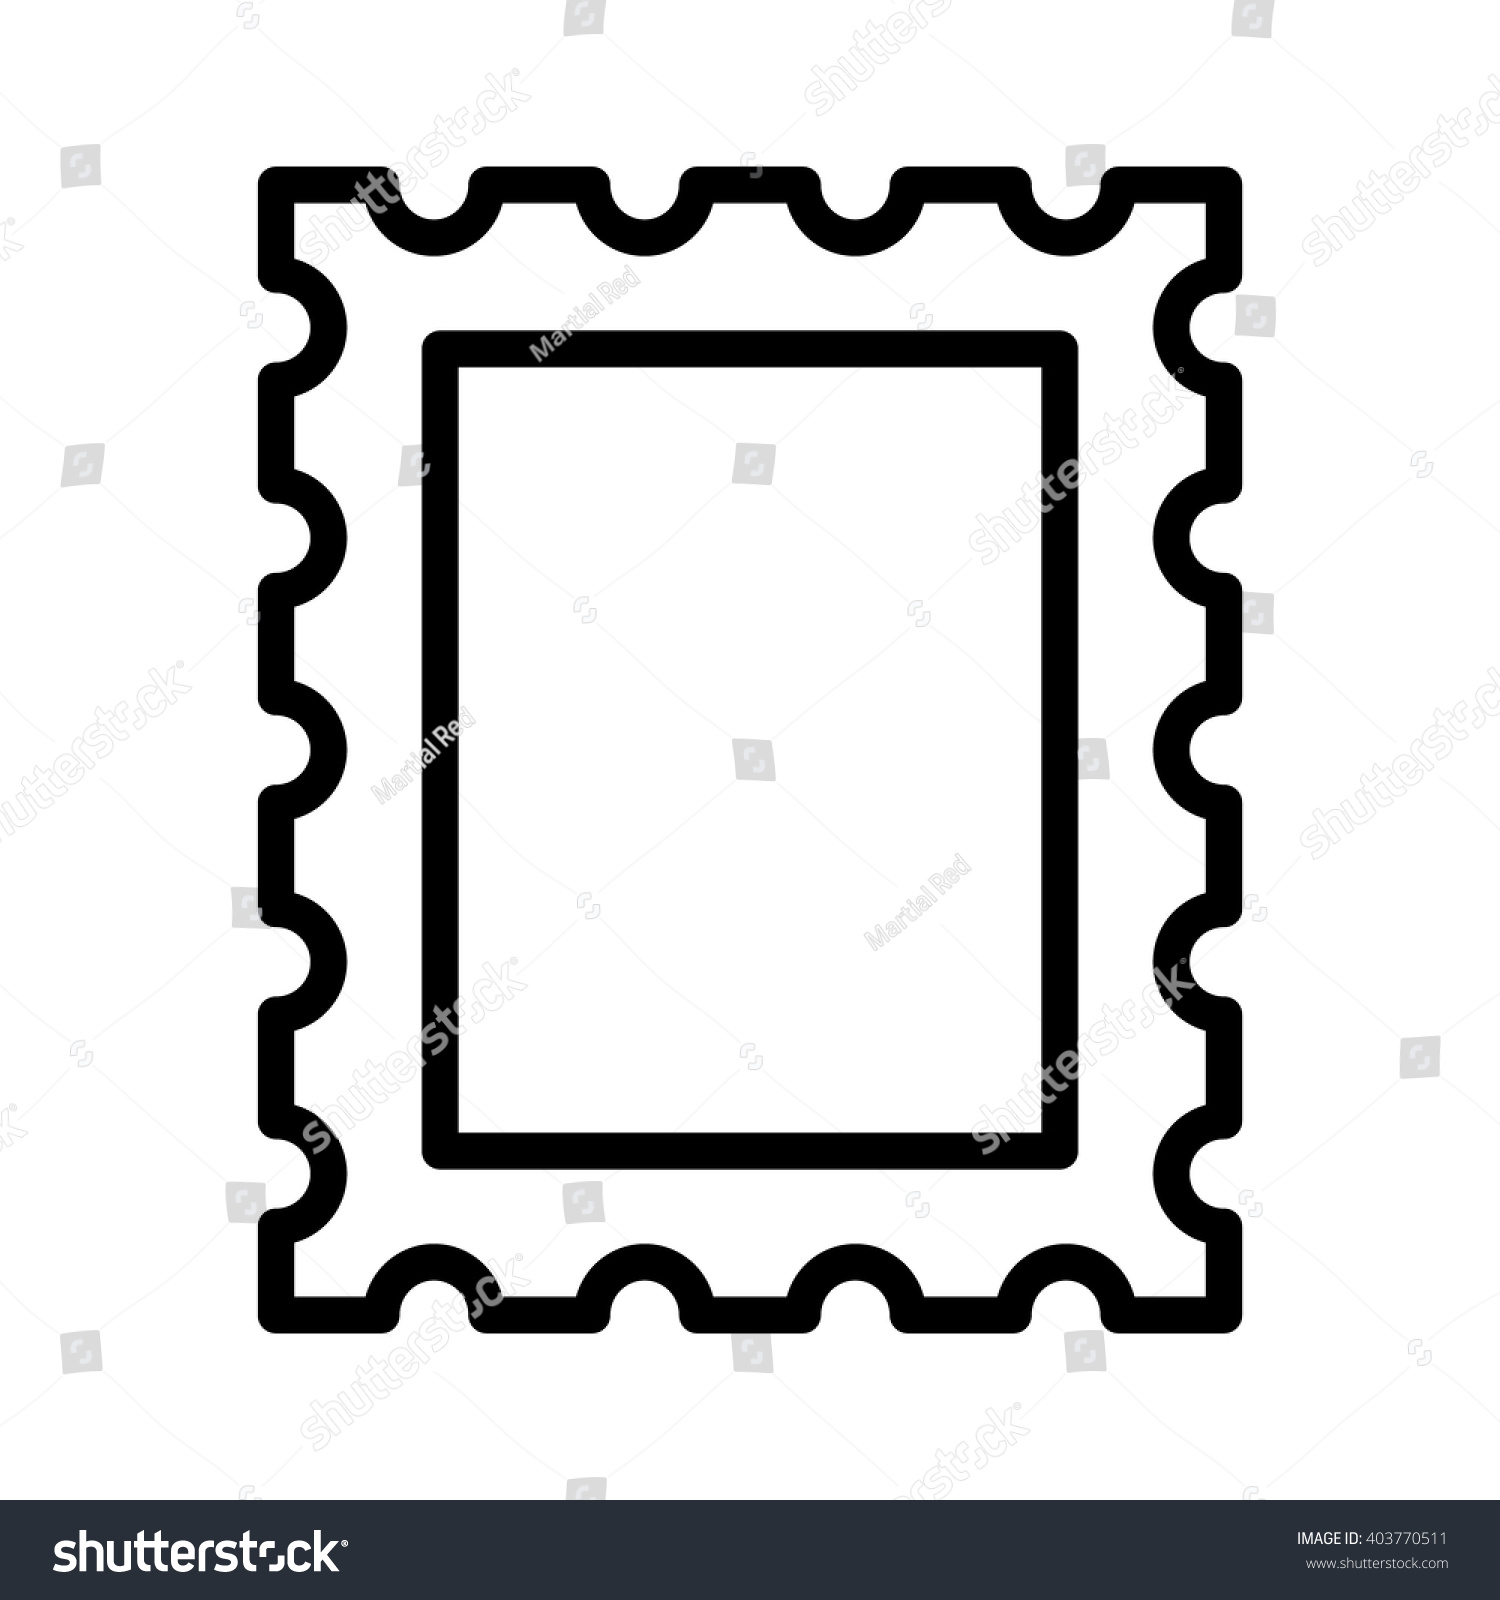 mail letter postage stamp line art icon for apps and websites